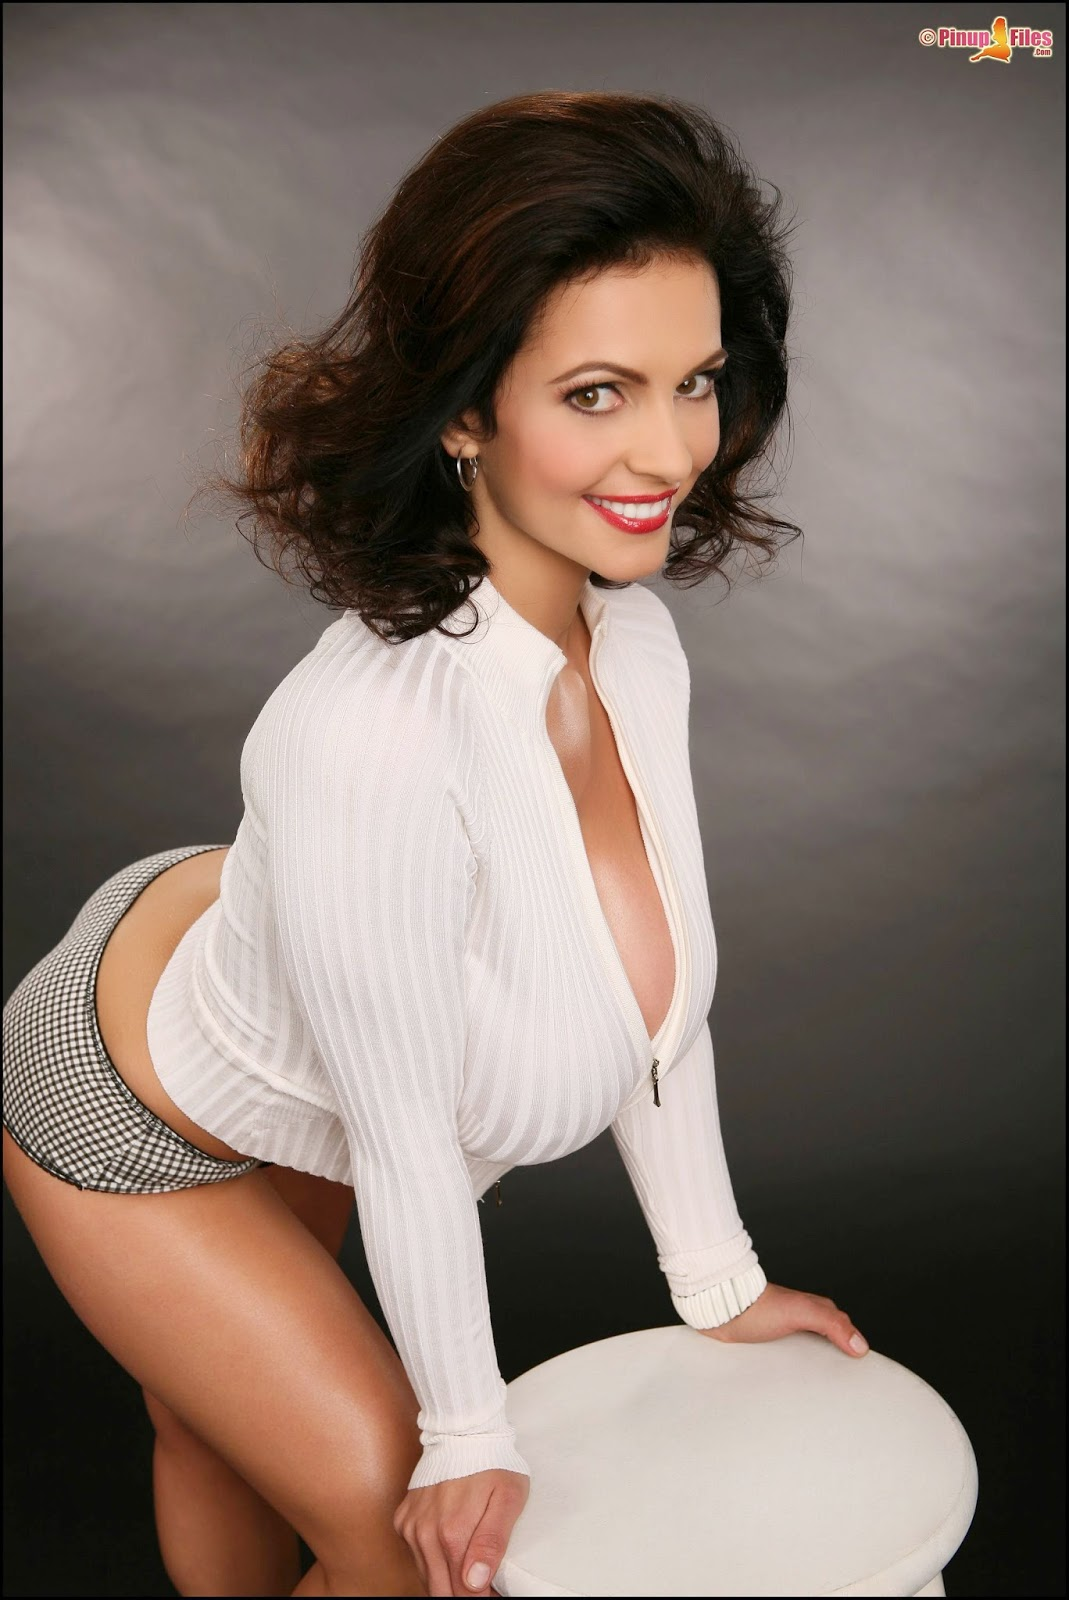 Denise Milani Archives: Pinup Files Vol. 5